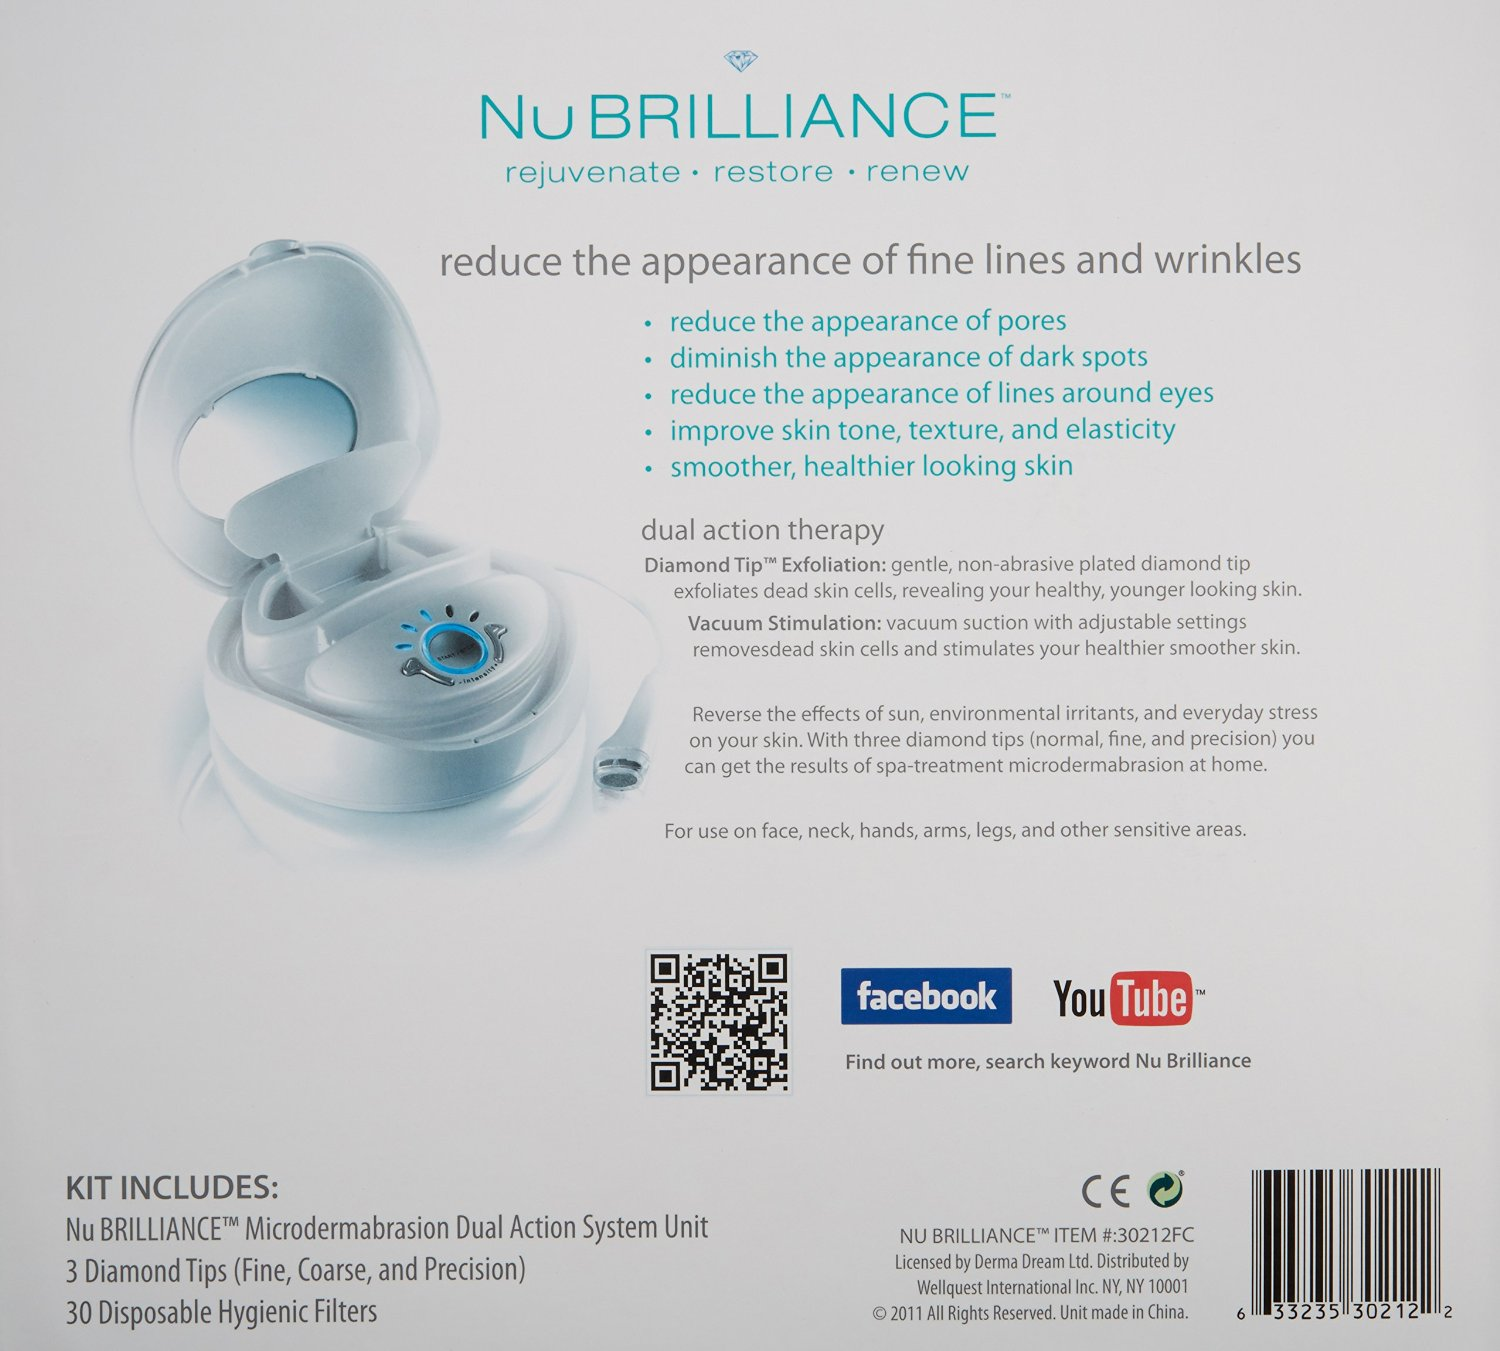 Edgewood Md Read Consumer Reviews Browse: NuBrilliance Microdermabrasion Skin Care System Review